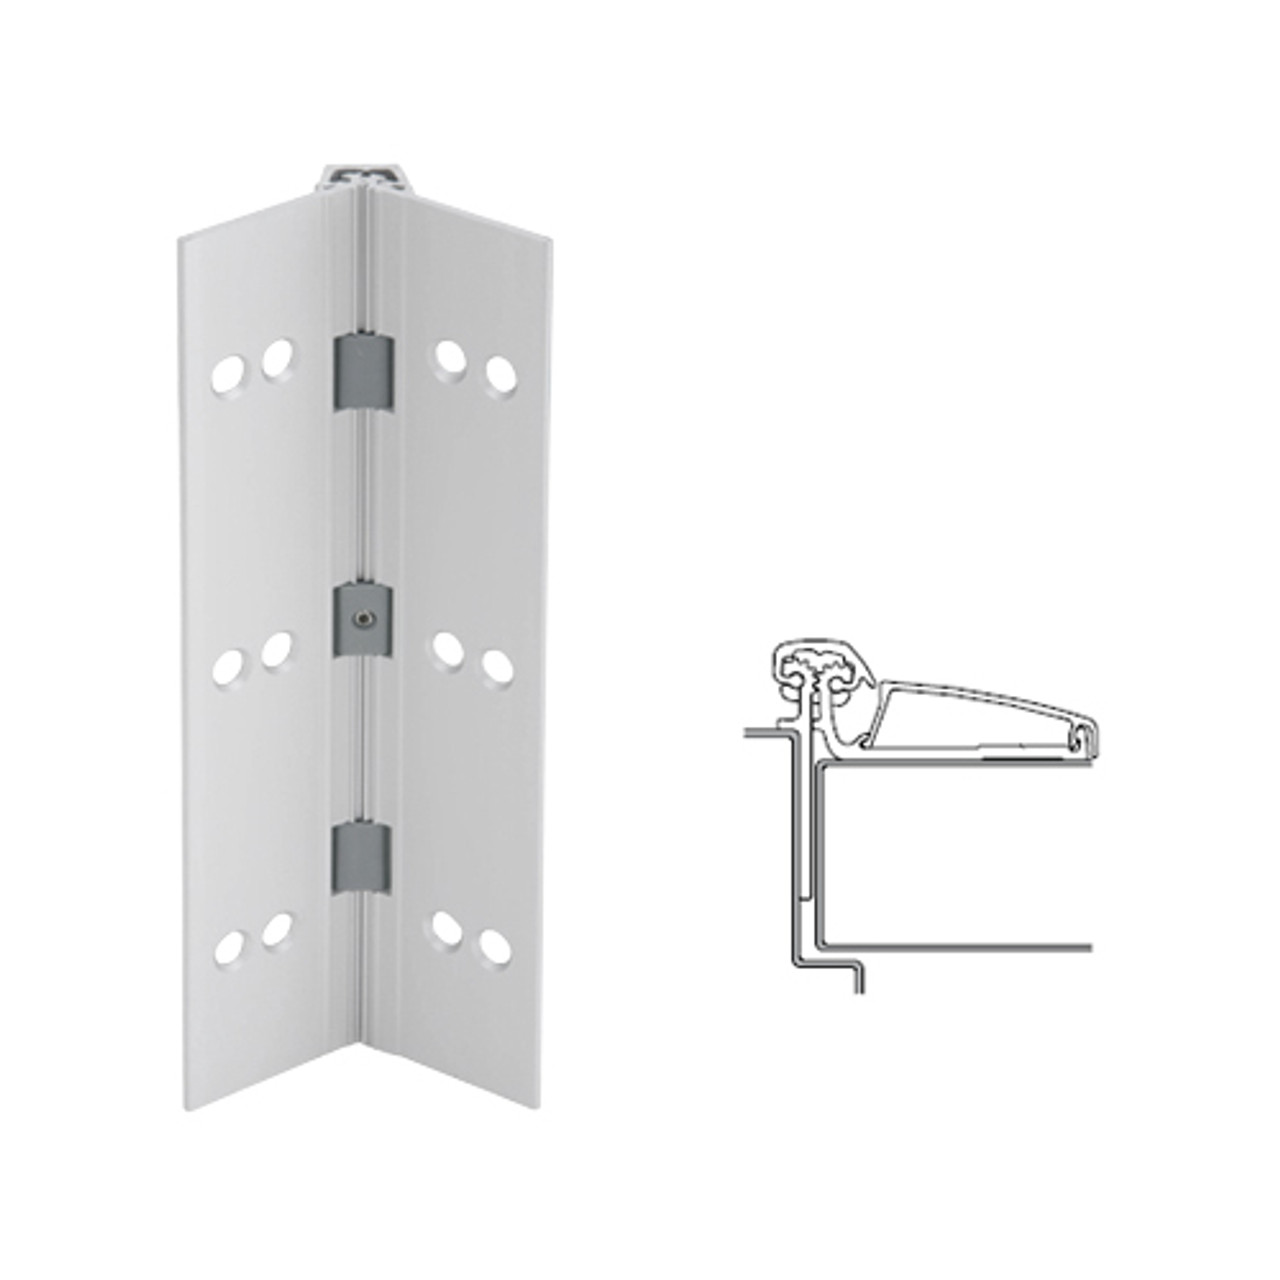 045XY-US28-120-TEKWD IVES Adjustable Half Surface Continuous Geared Hinges with Wood Screws in Satin Aluminum